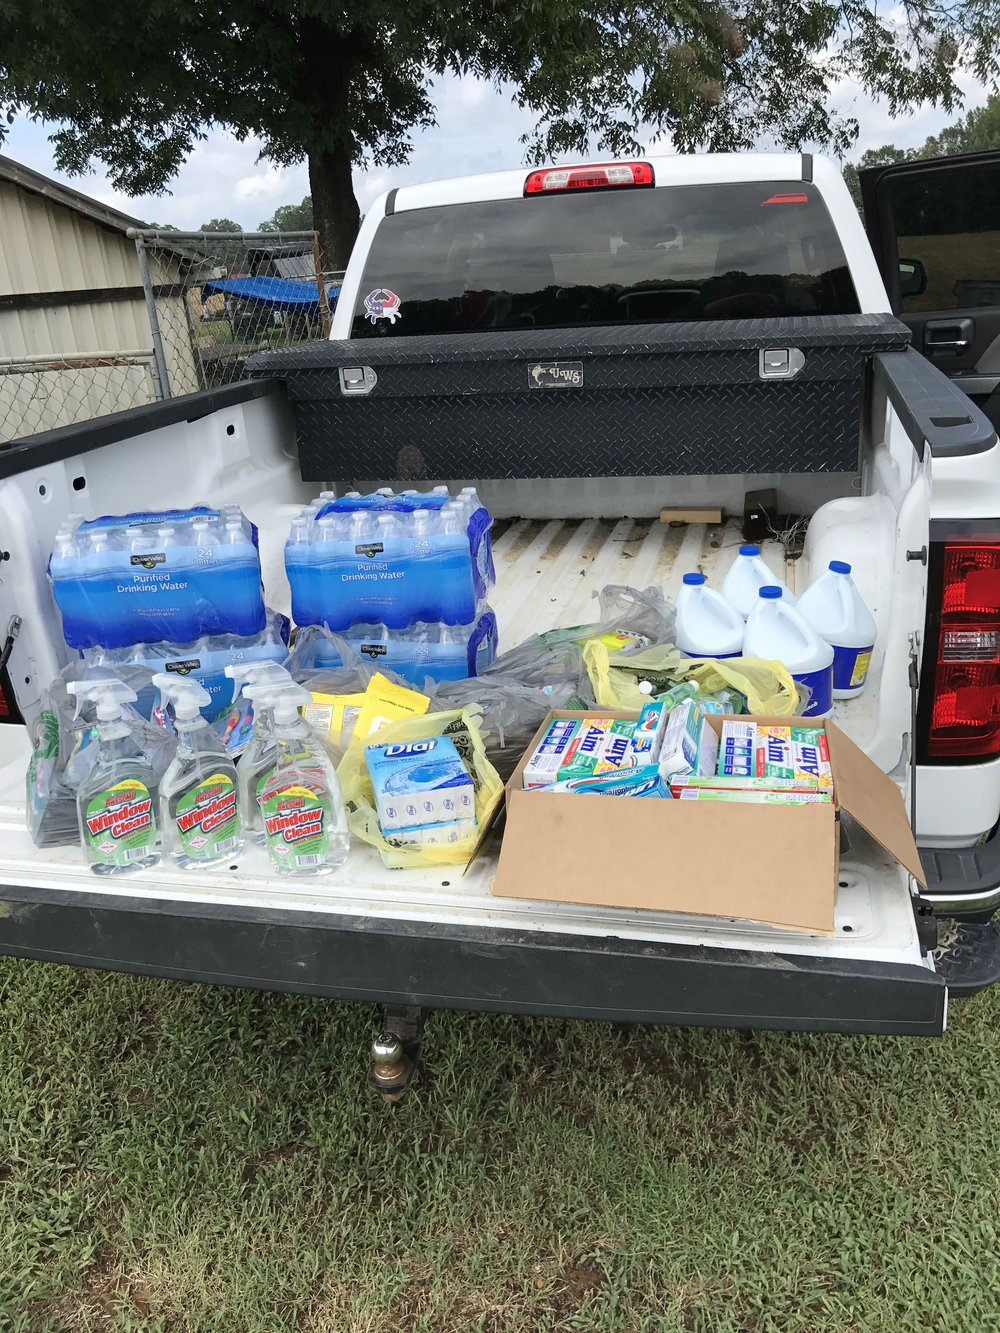 Hurricane Harvey Relief September 2017 - Supplies donated by C3 Farms to a local fundraiser to help Harvey victims in the Houston area.